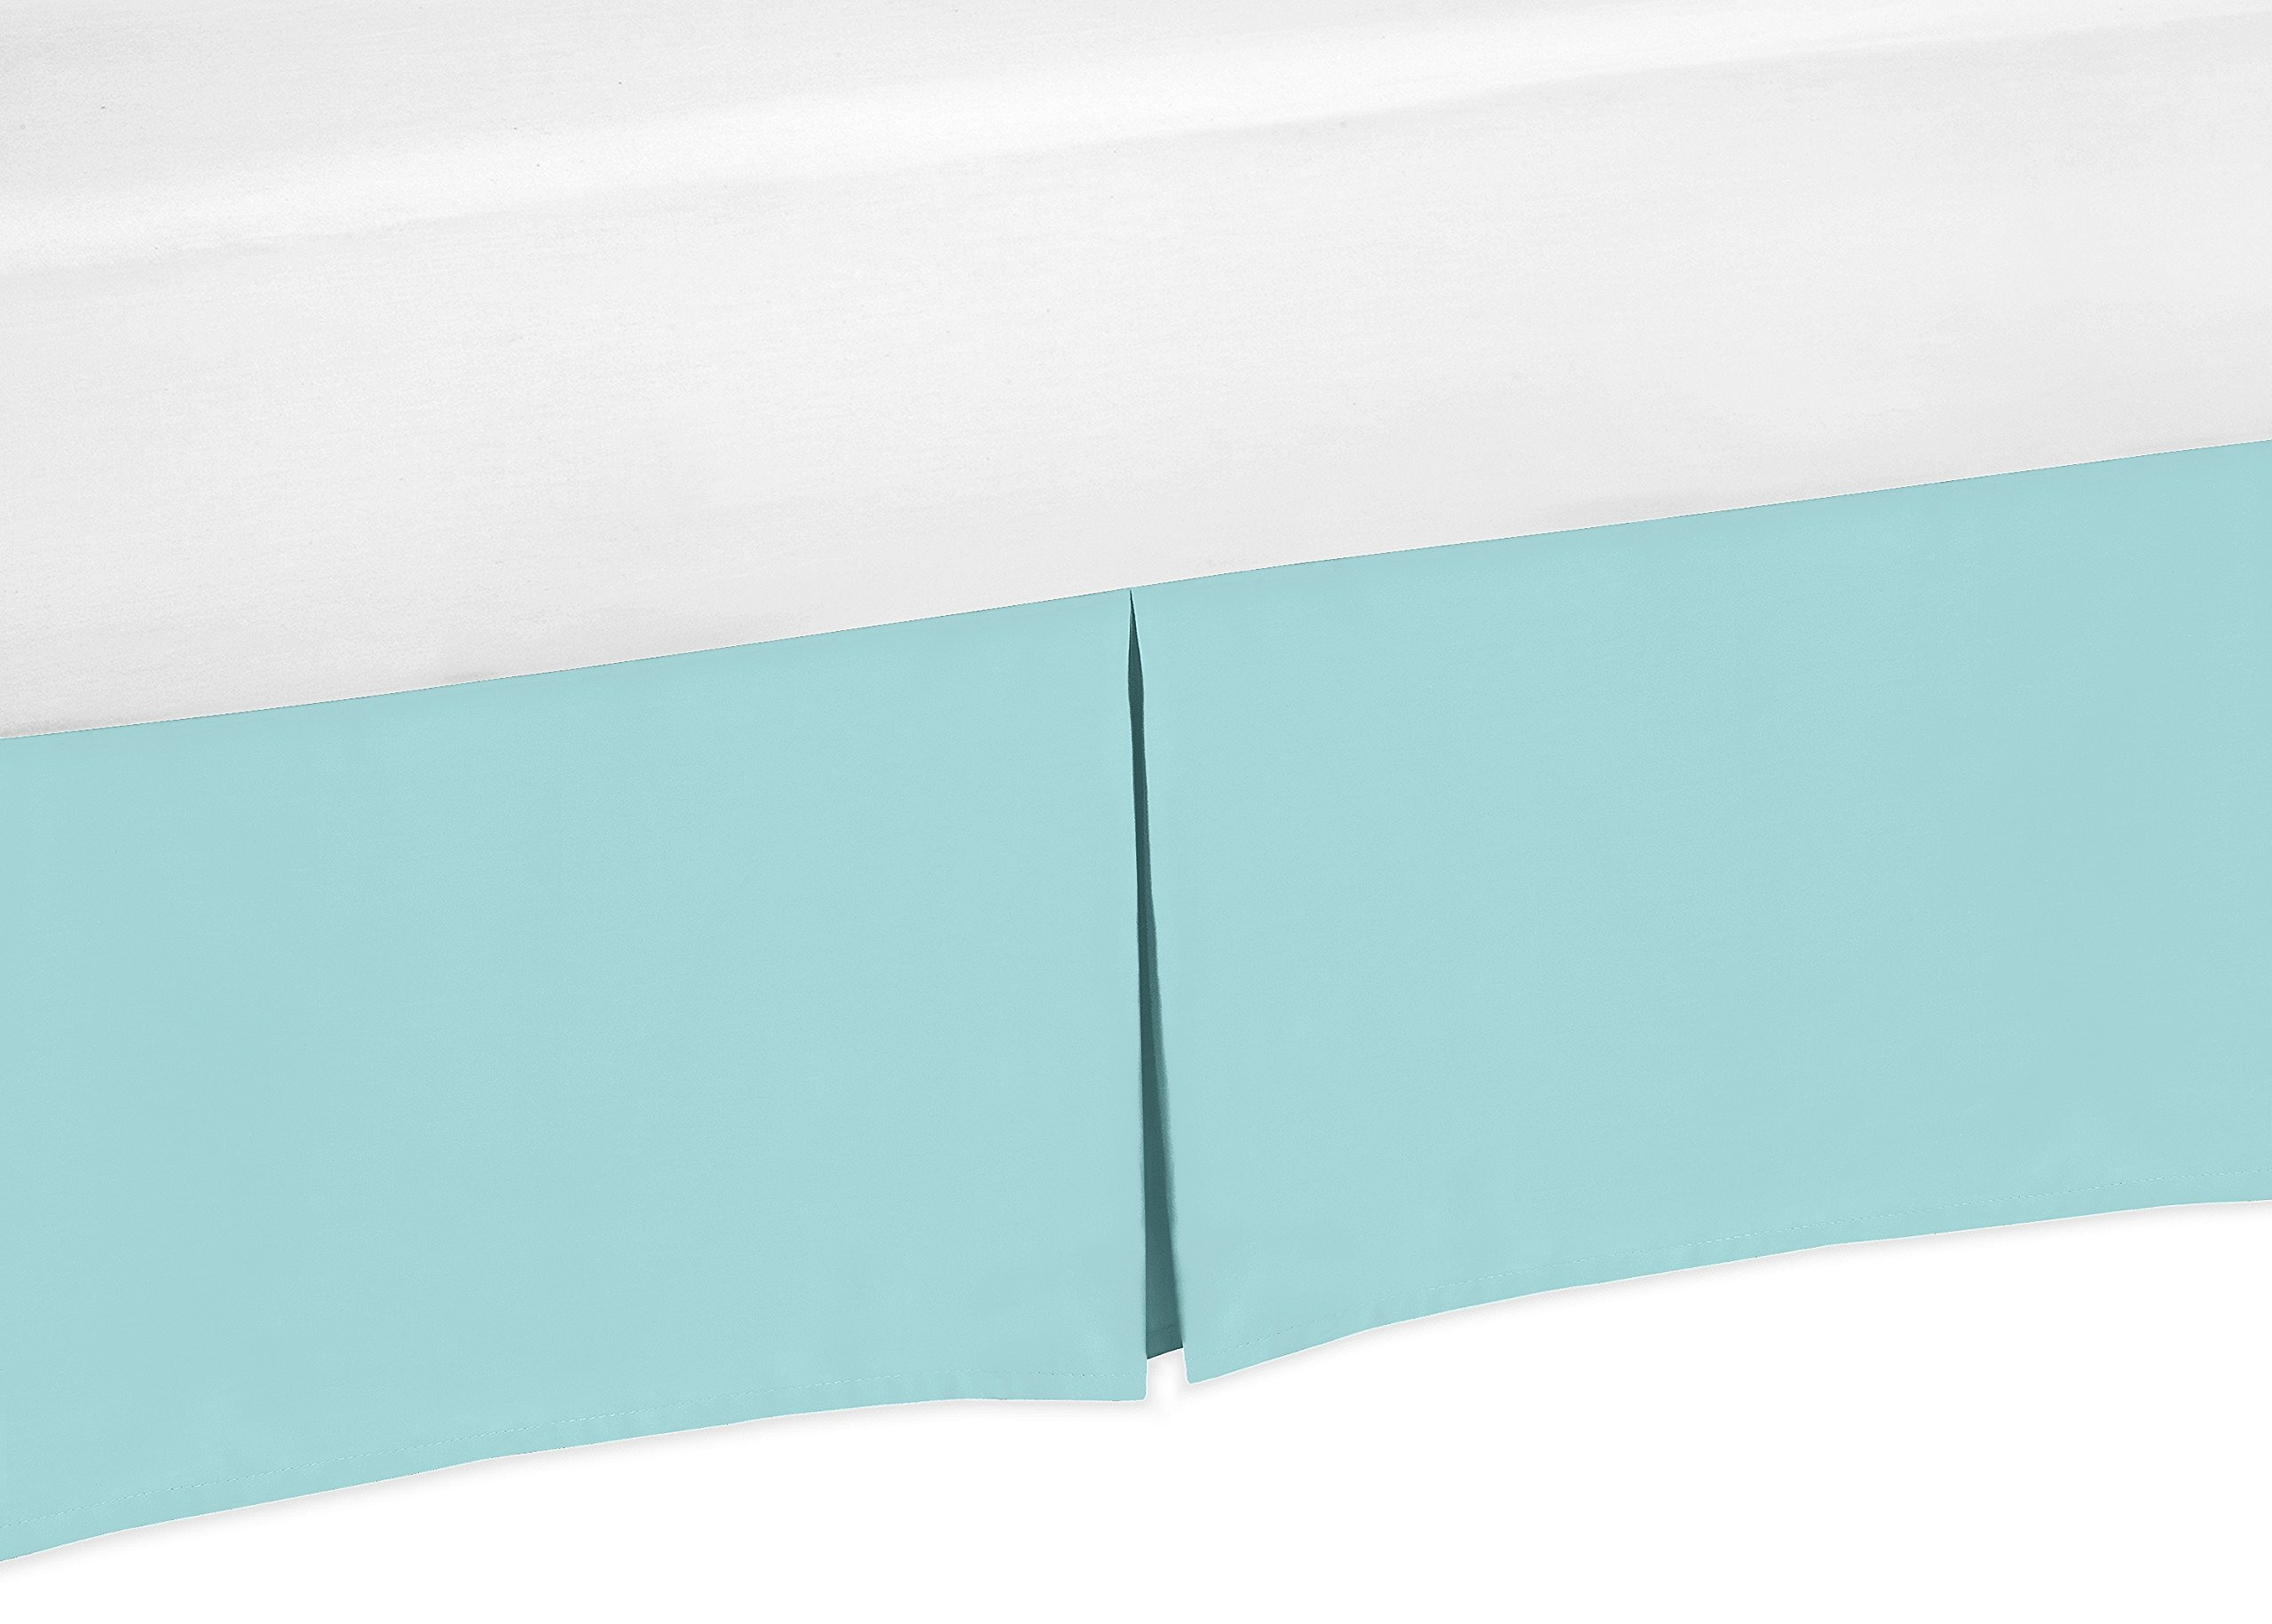 Sweet Jojo Designs Turquoise Blue Crib Bed Skirt for Baby Bedding Sets